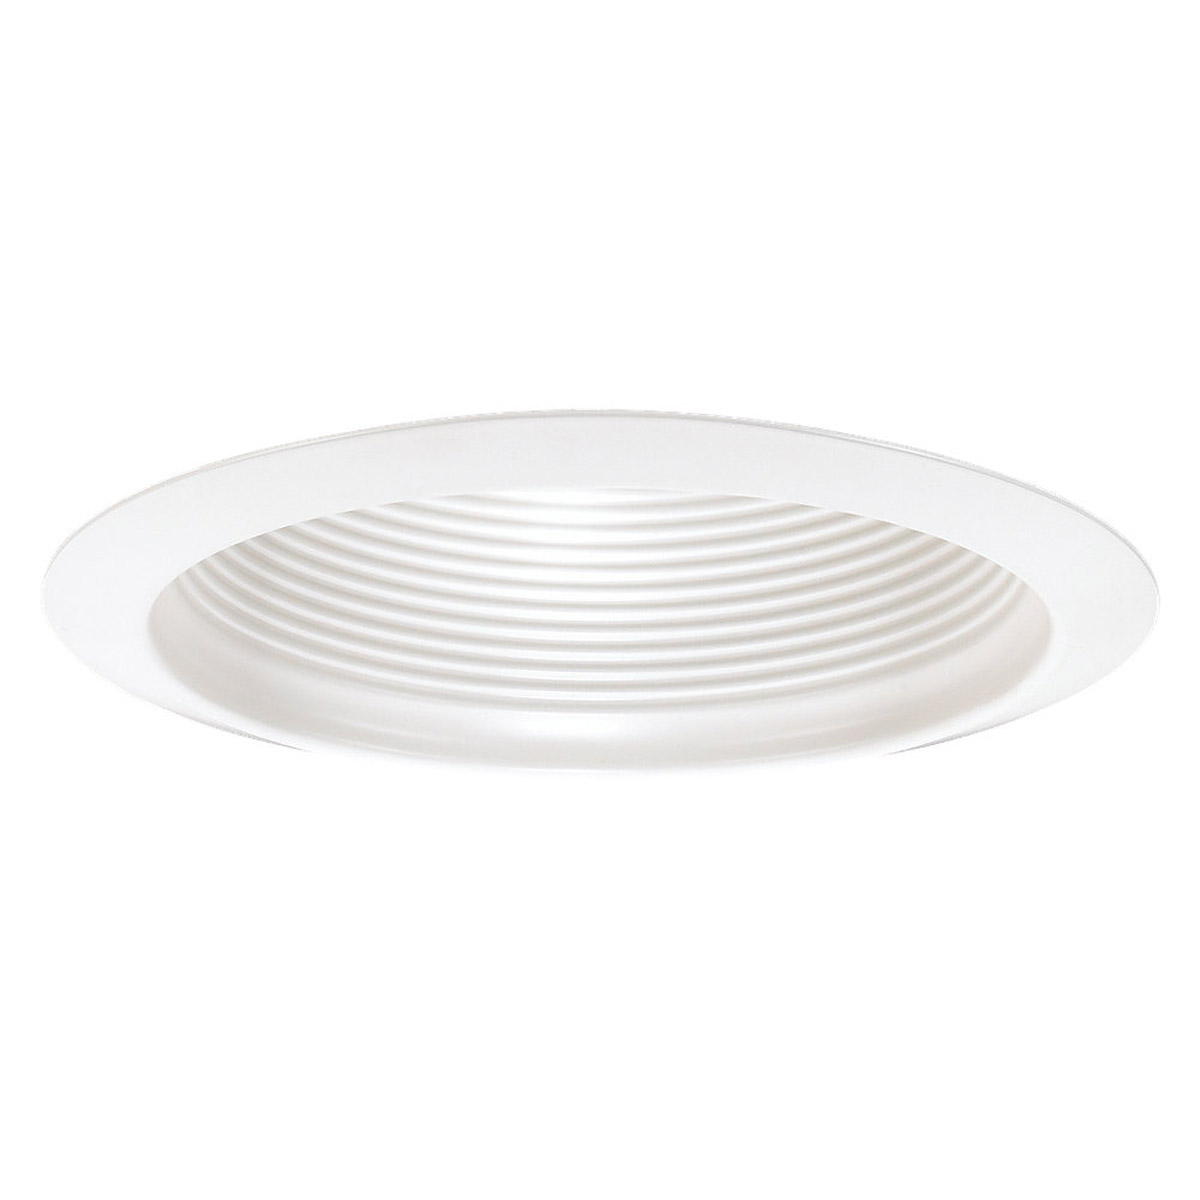 Sea Gull Lighting Signature Recessed Trim Only in White 1151AT-14